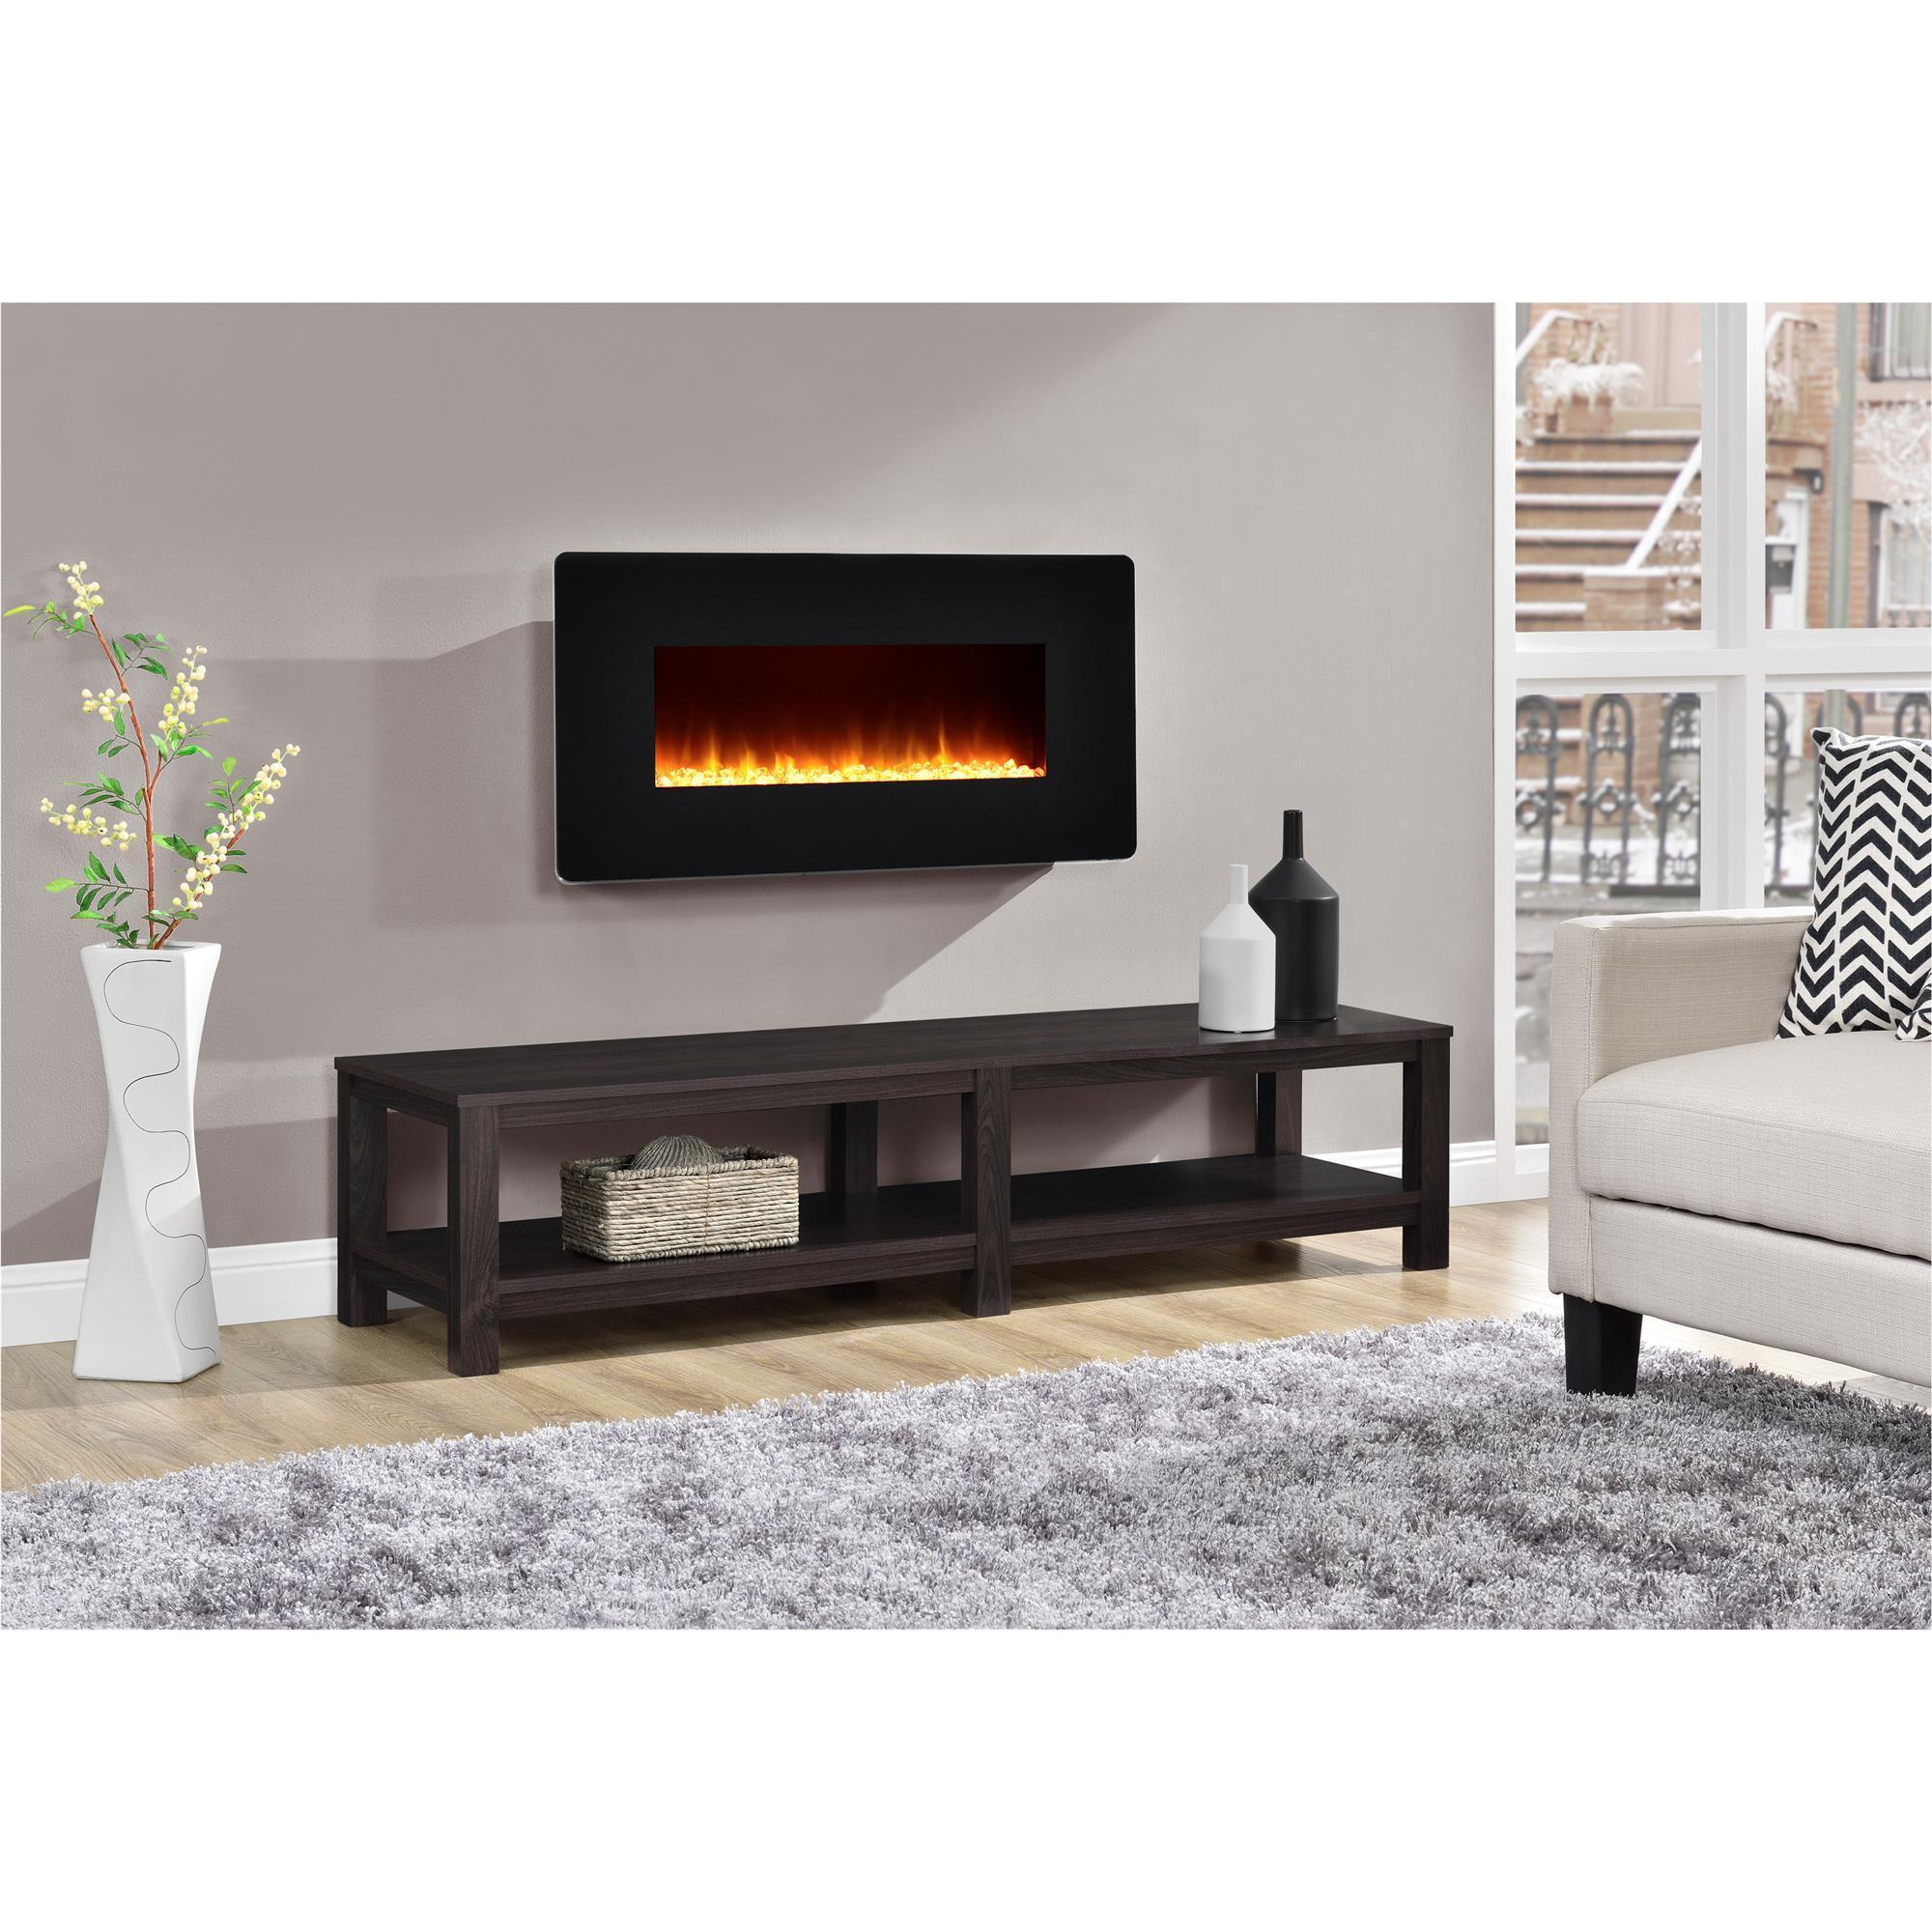 open prod wall melibea climacity contemporary mounted fireplace bioethanol product purline hearth